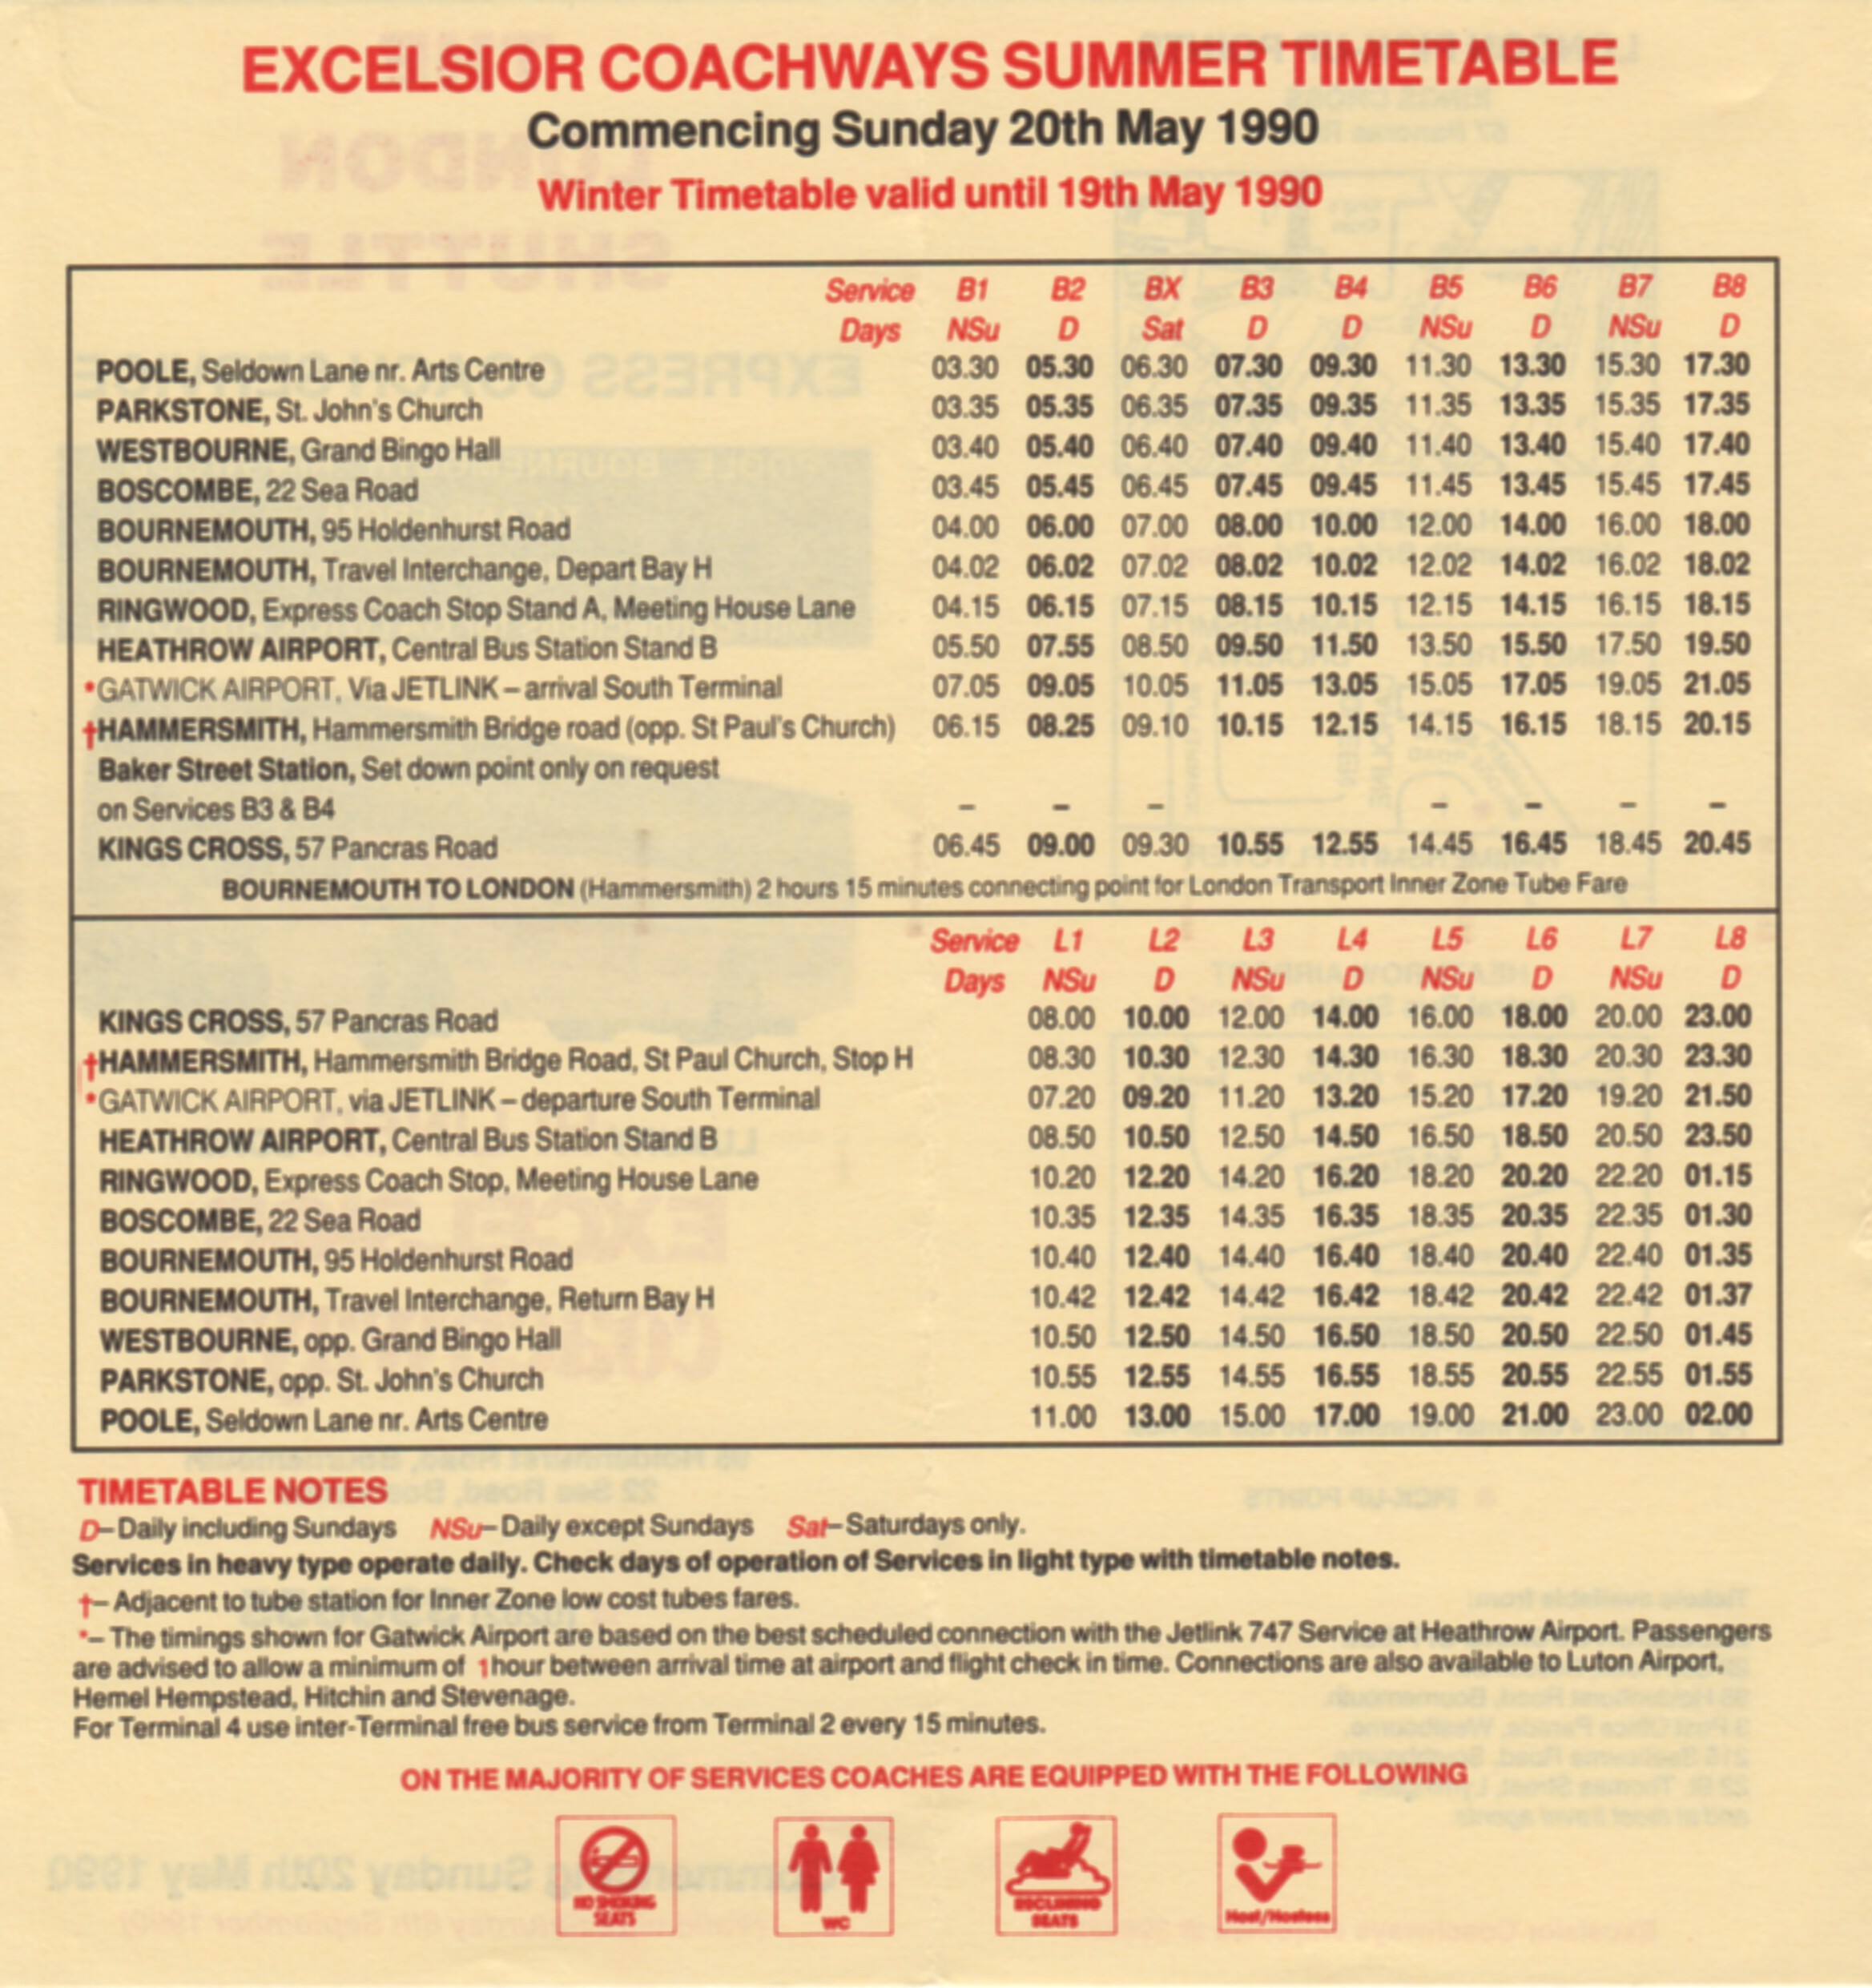 1990 summer timetable London service